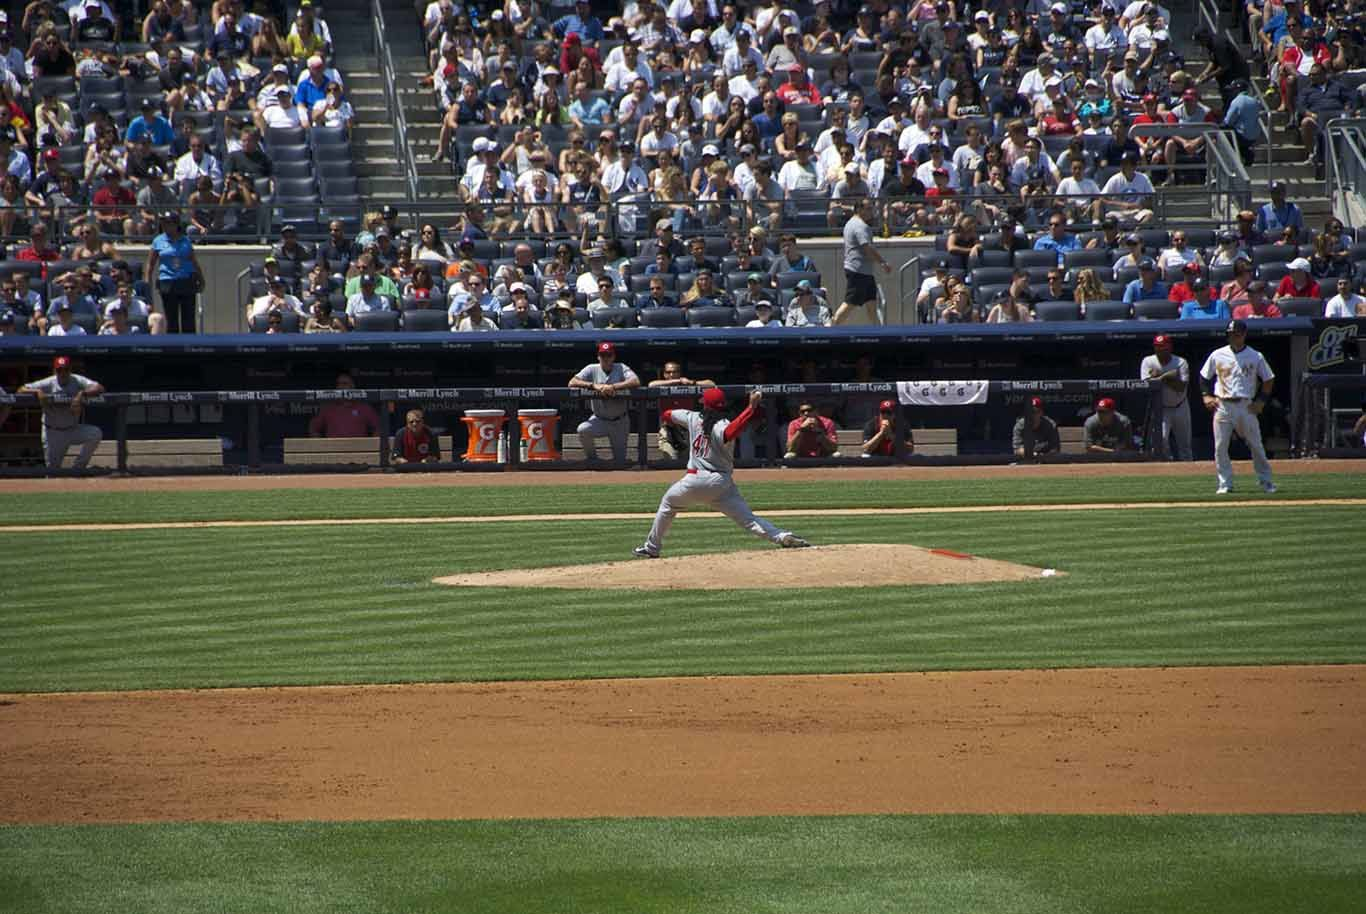 The ball game and the Yankee Stadium from the inside